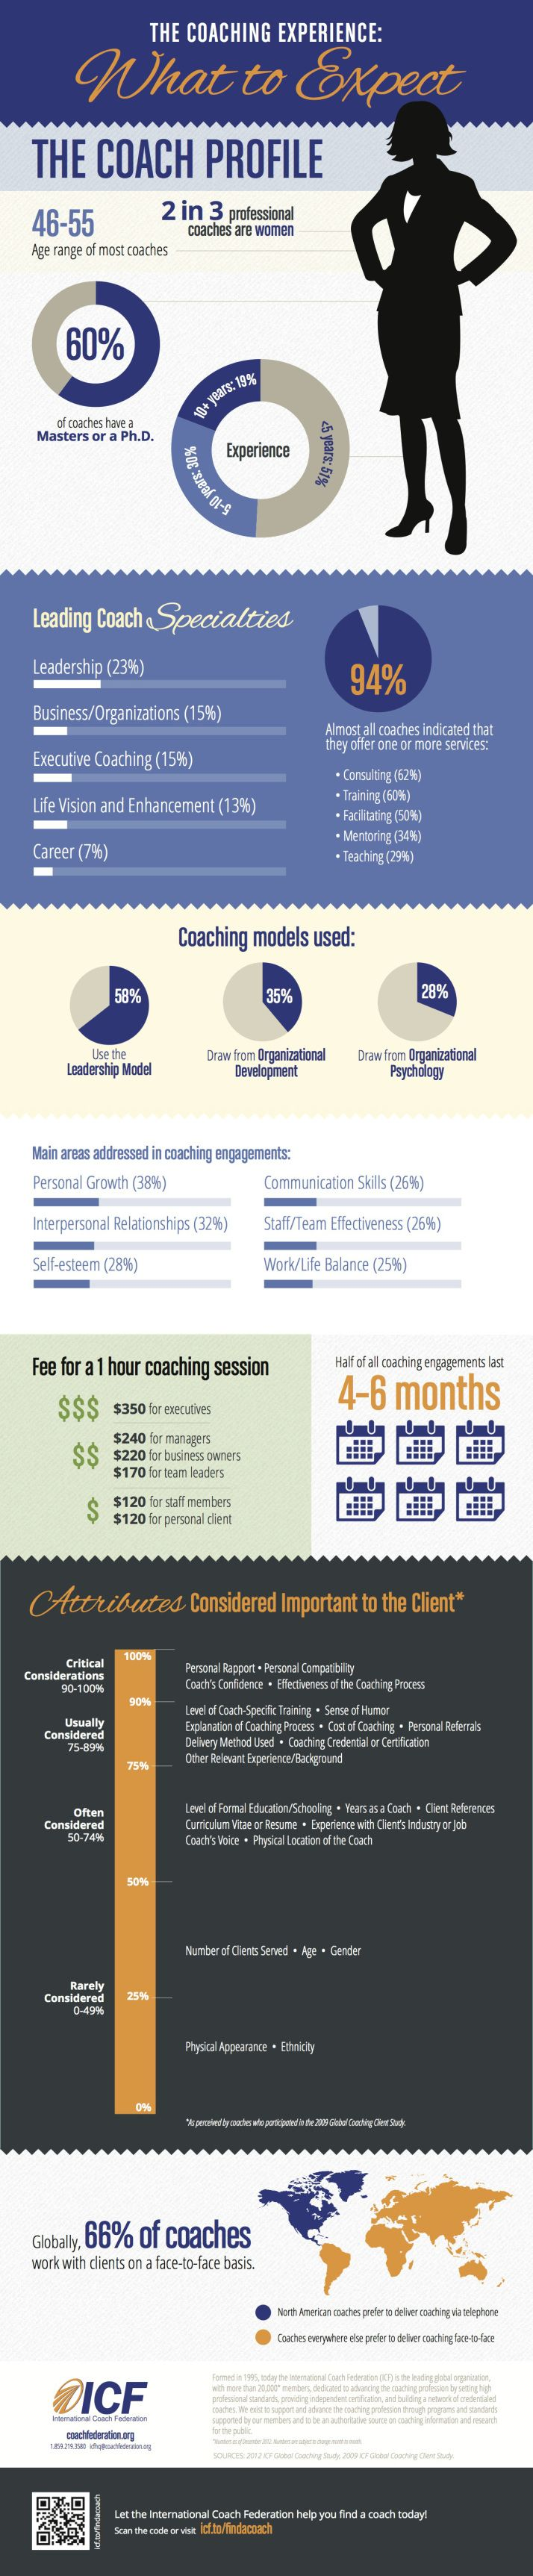 The coaching experience #infographic